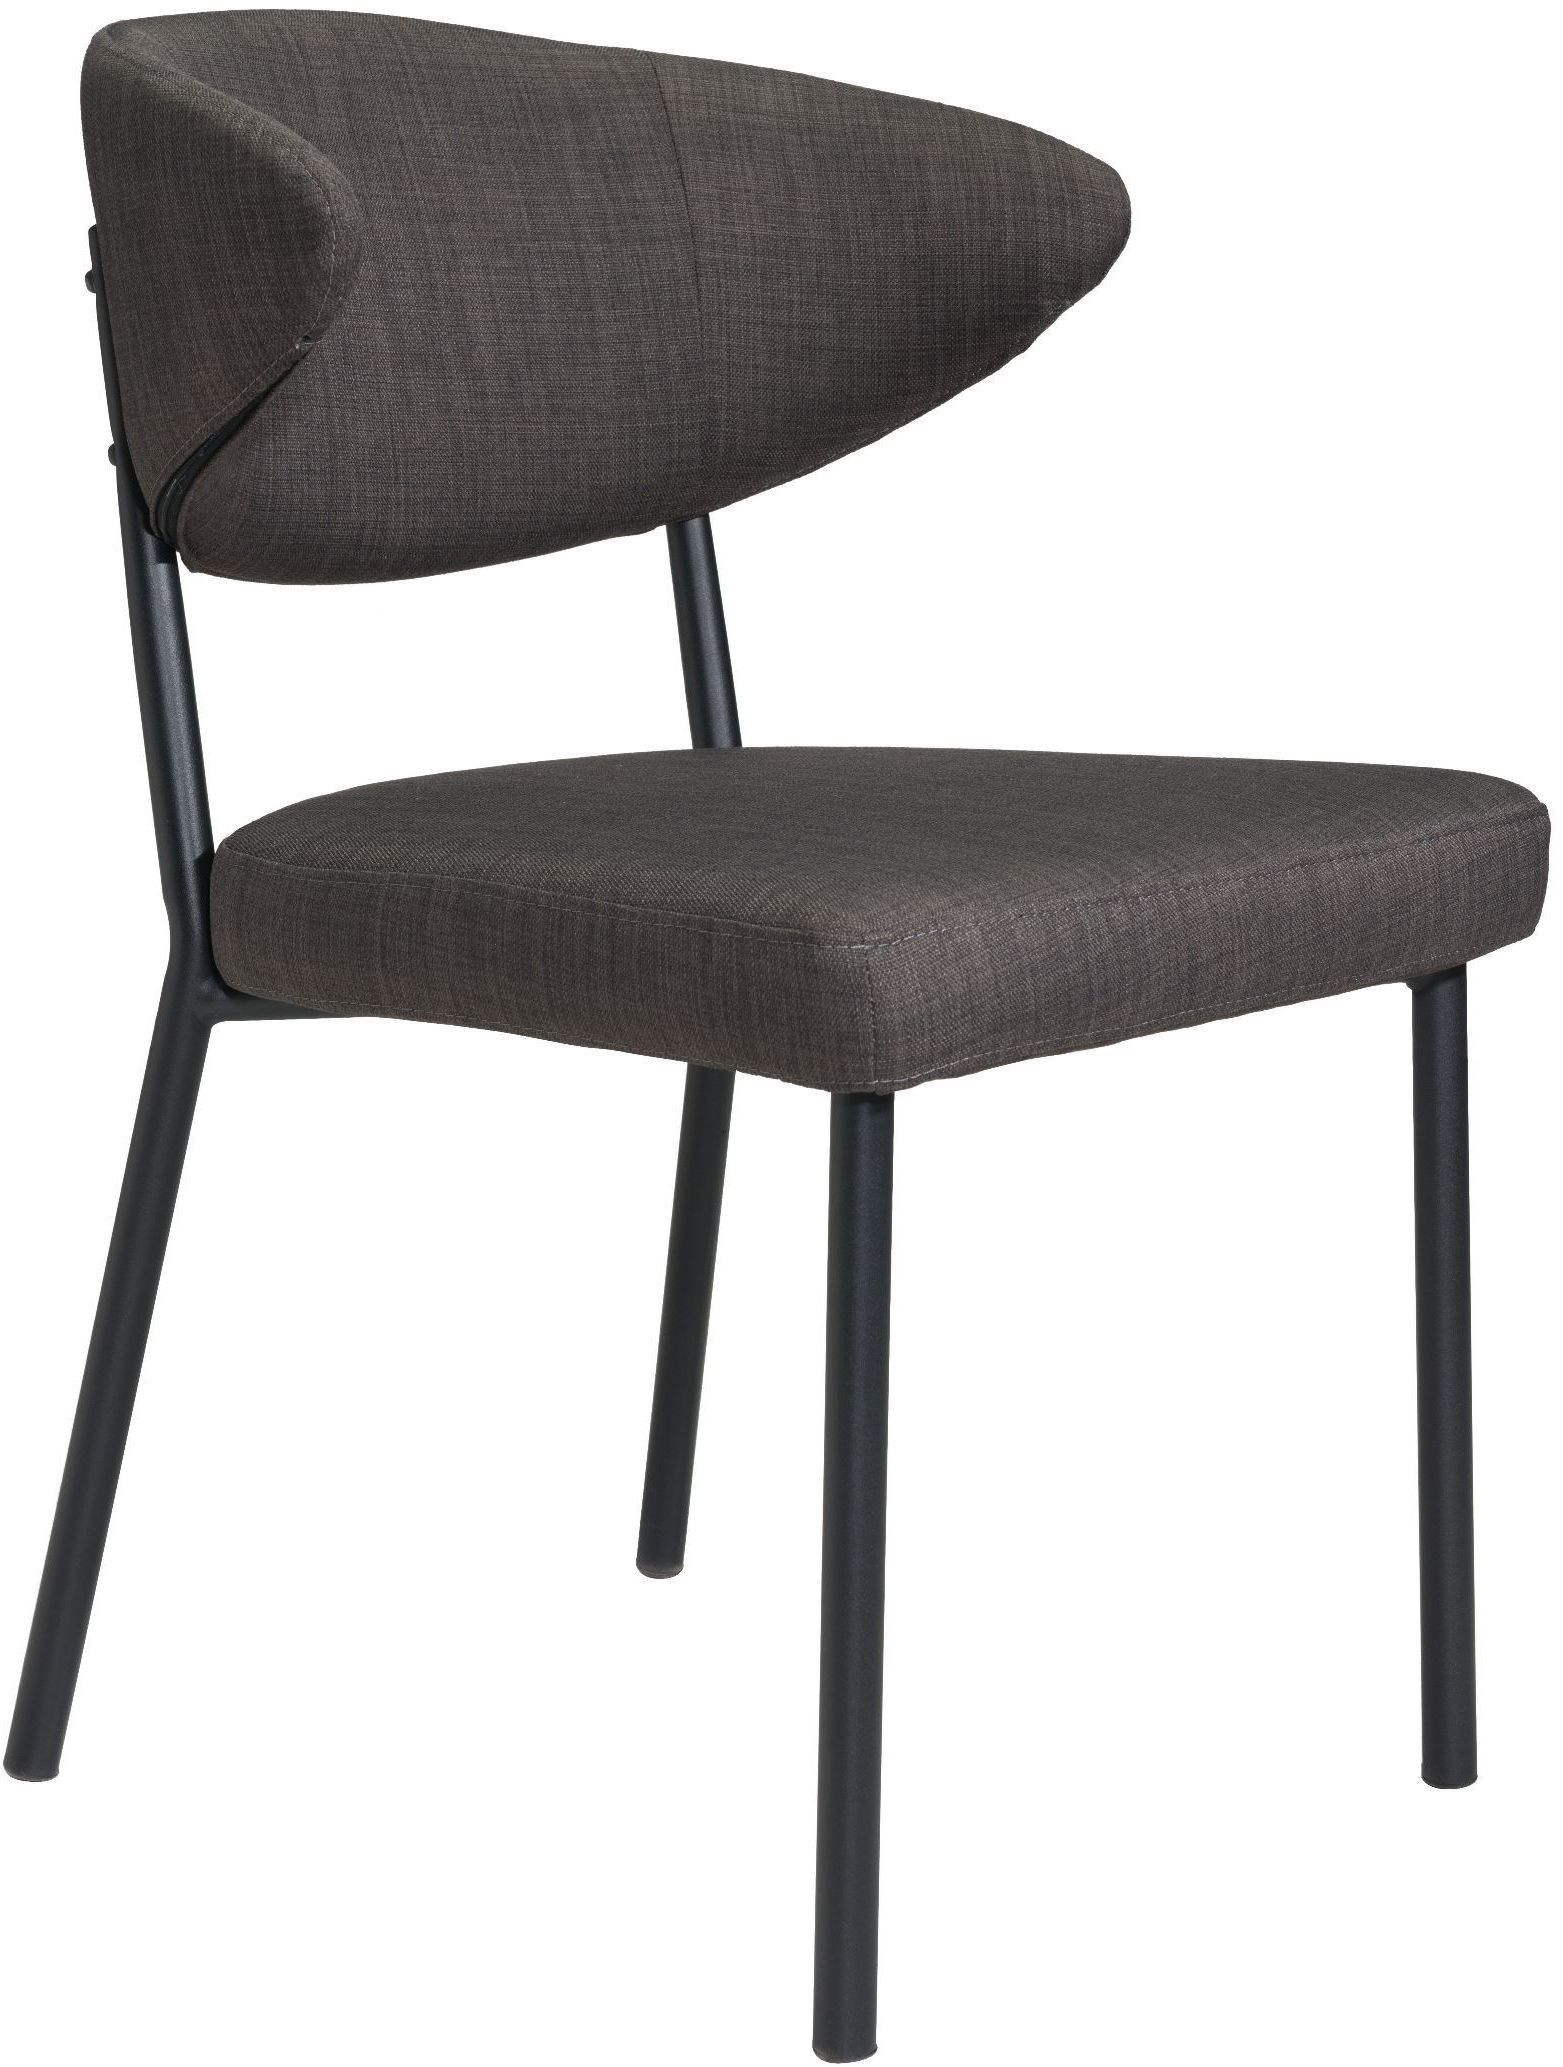 Pontus Charcoal Gray Dining Chair Set of 2 from Zuo